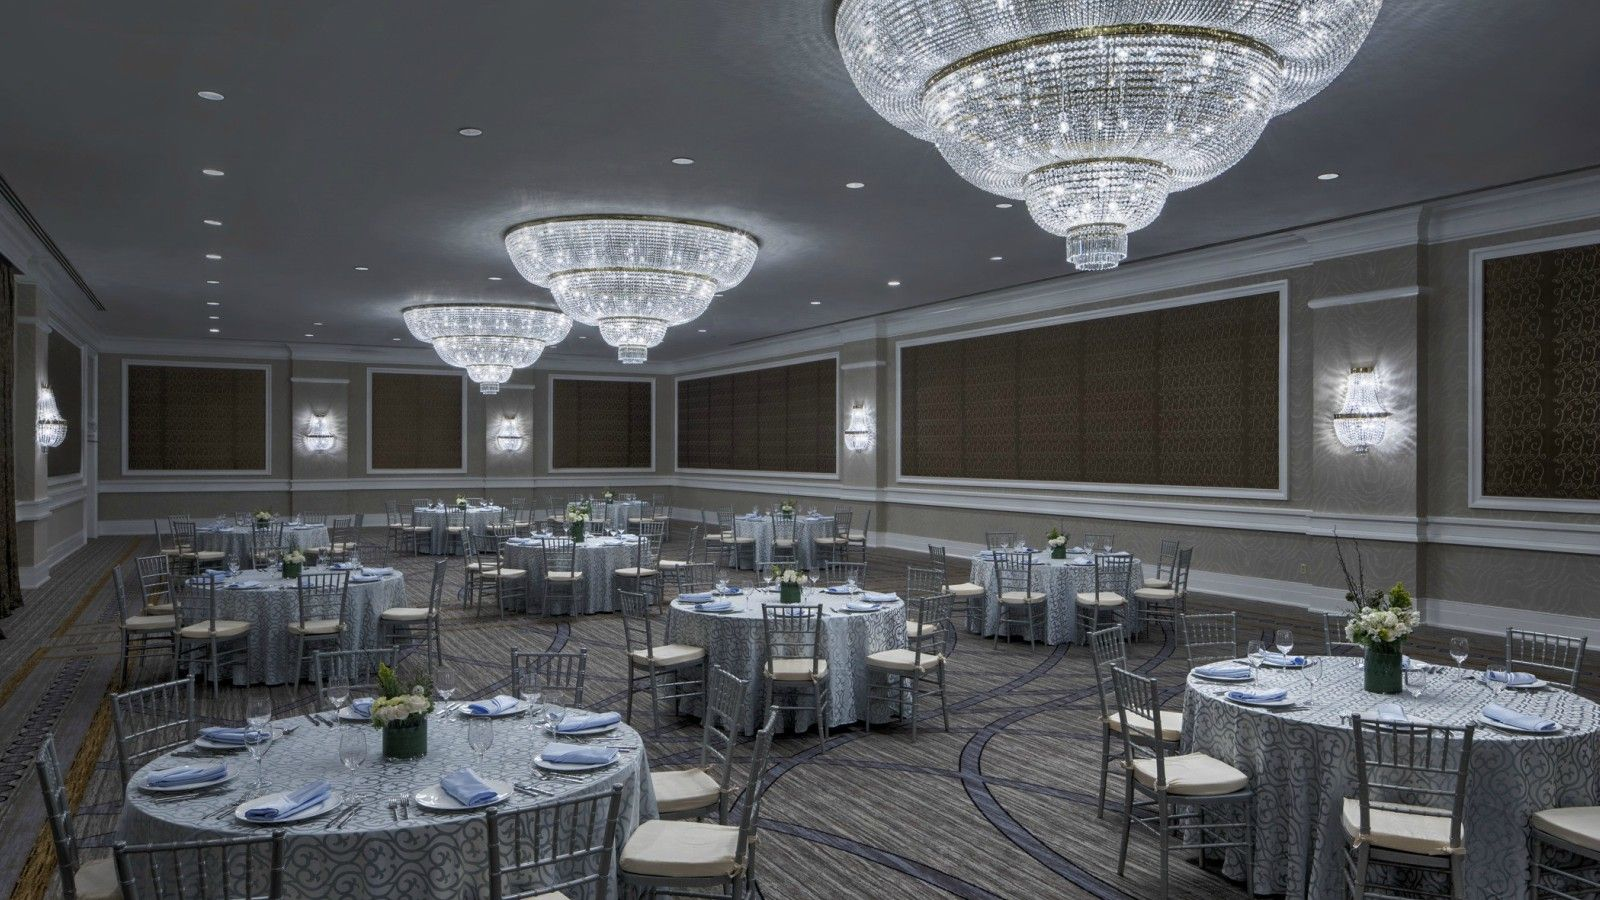 Wedding Venue in South Jersey | Regency Ballroom